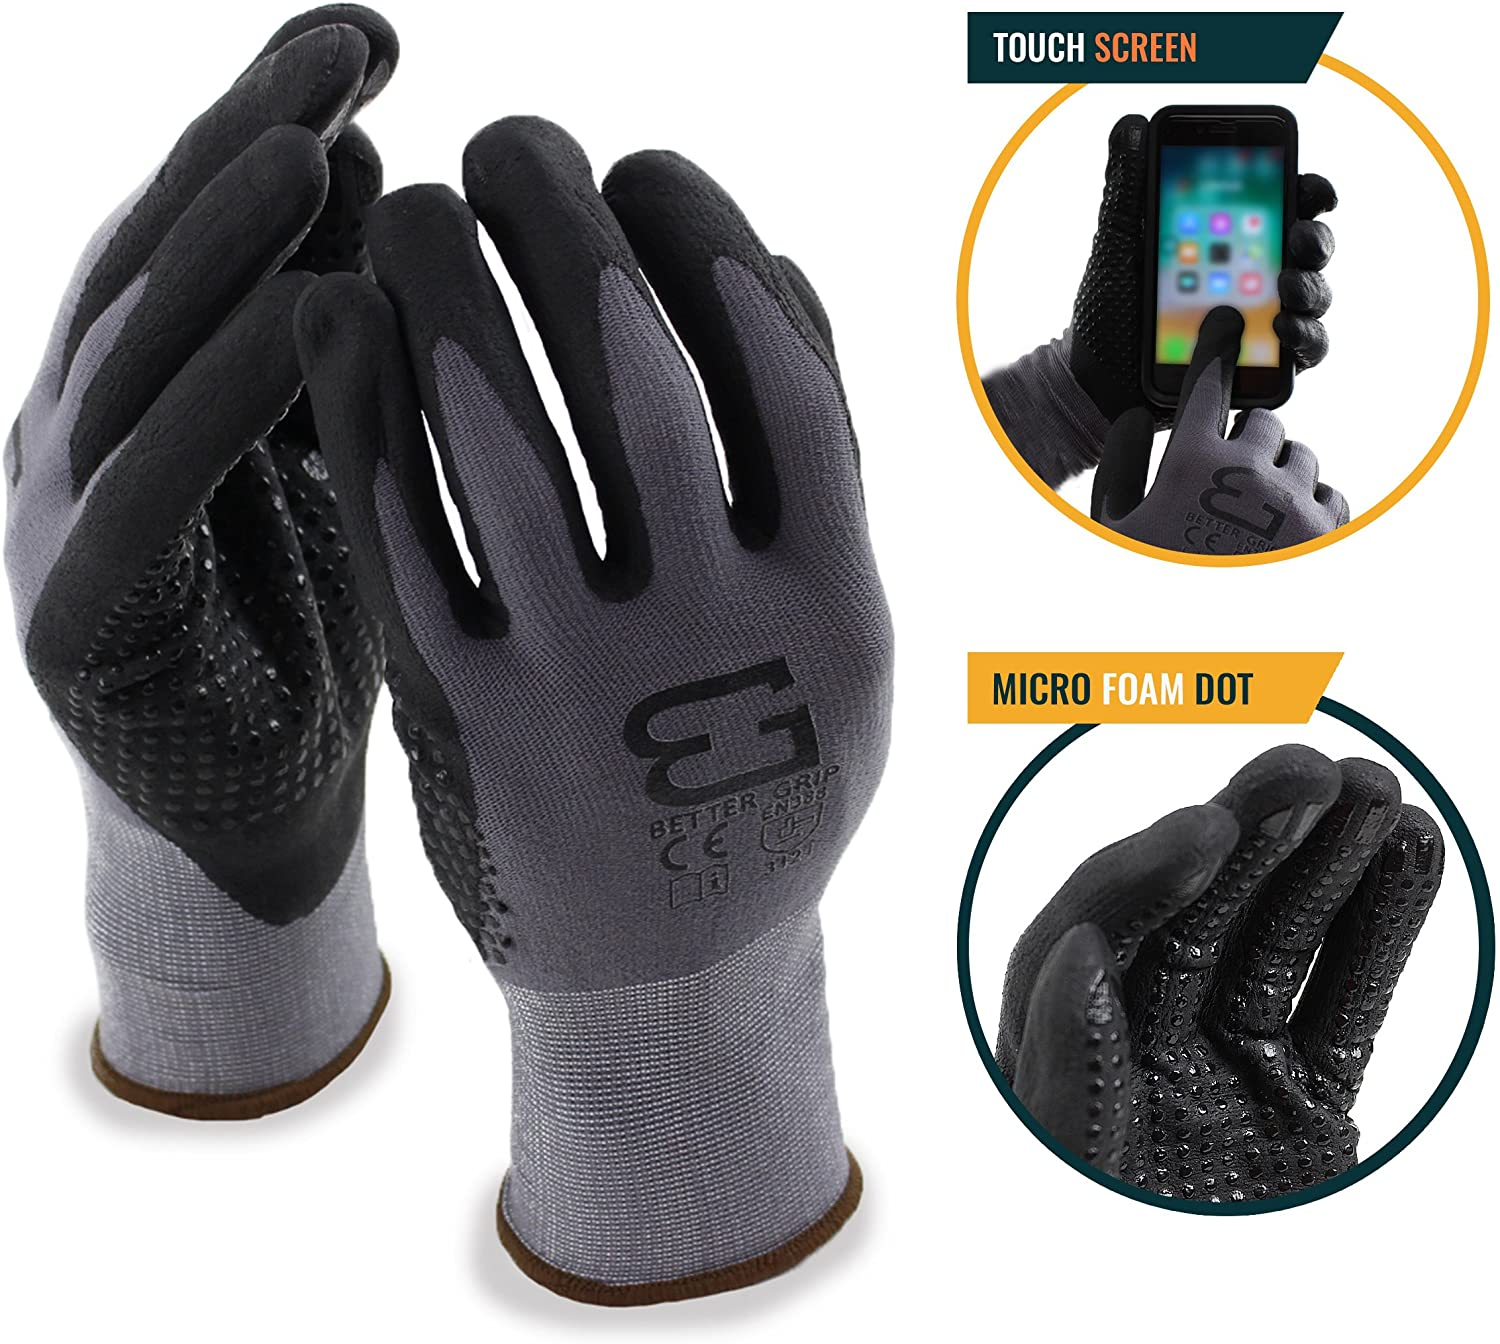 Better Grip Flex BGFLEXDOT Micro Foam Nitrile Coated Nylon Work Gloves with Nitrile Dots on Palm For Smart Phone (Pack of 3, Extra Large, Gray)